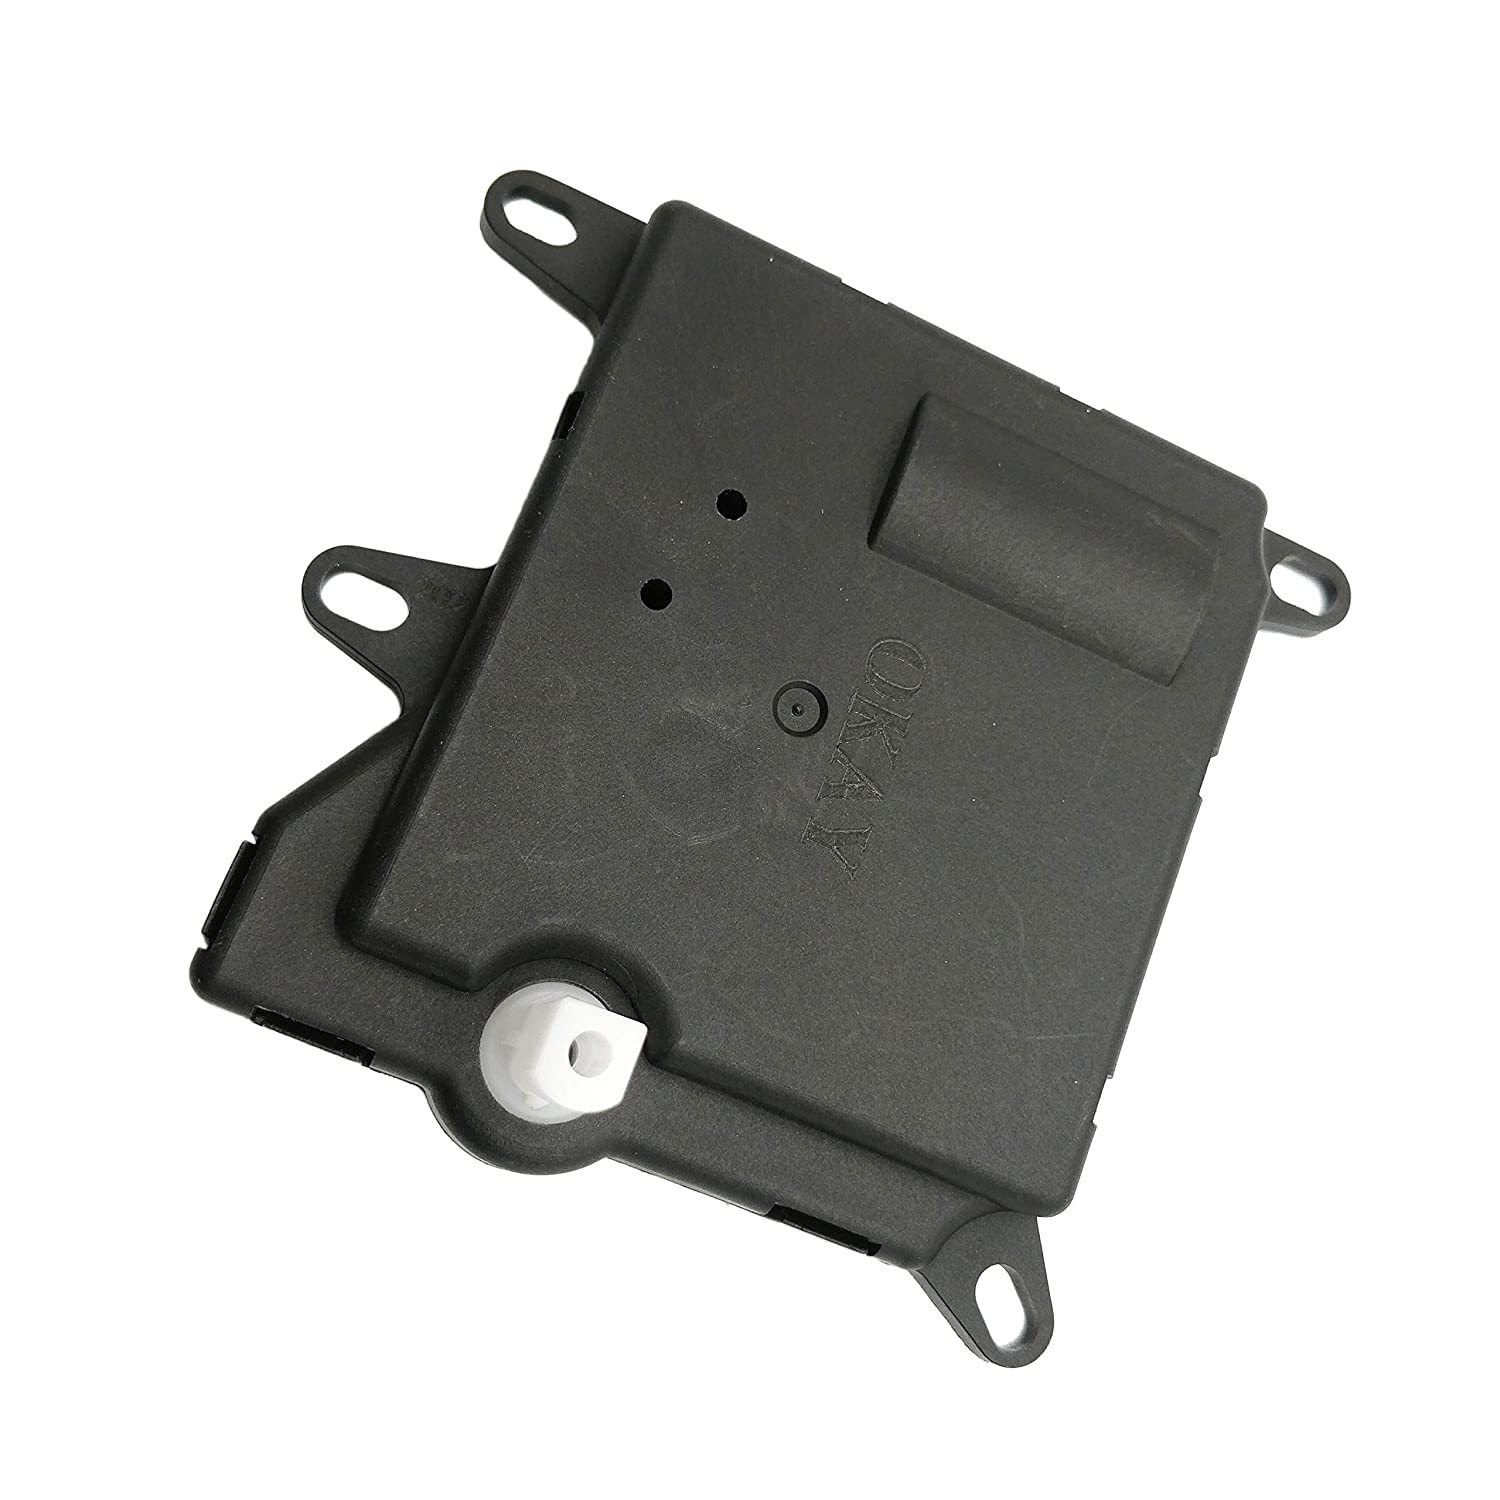 HVAC Heater Blend Door Actuator for Ranger Explorer Expedition Navigator Mountaineer Hangzhou Yupin Auto Parts Co.; Ltd. F5TZ19E616A